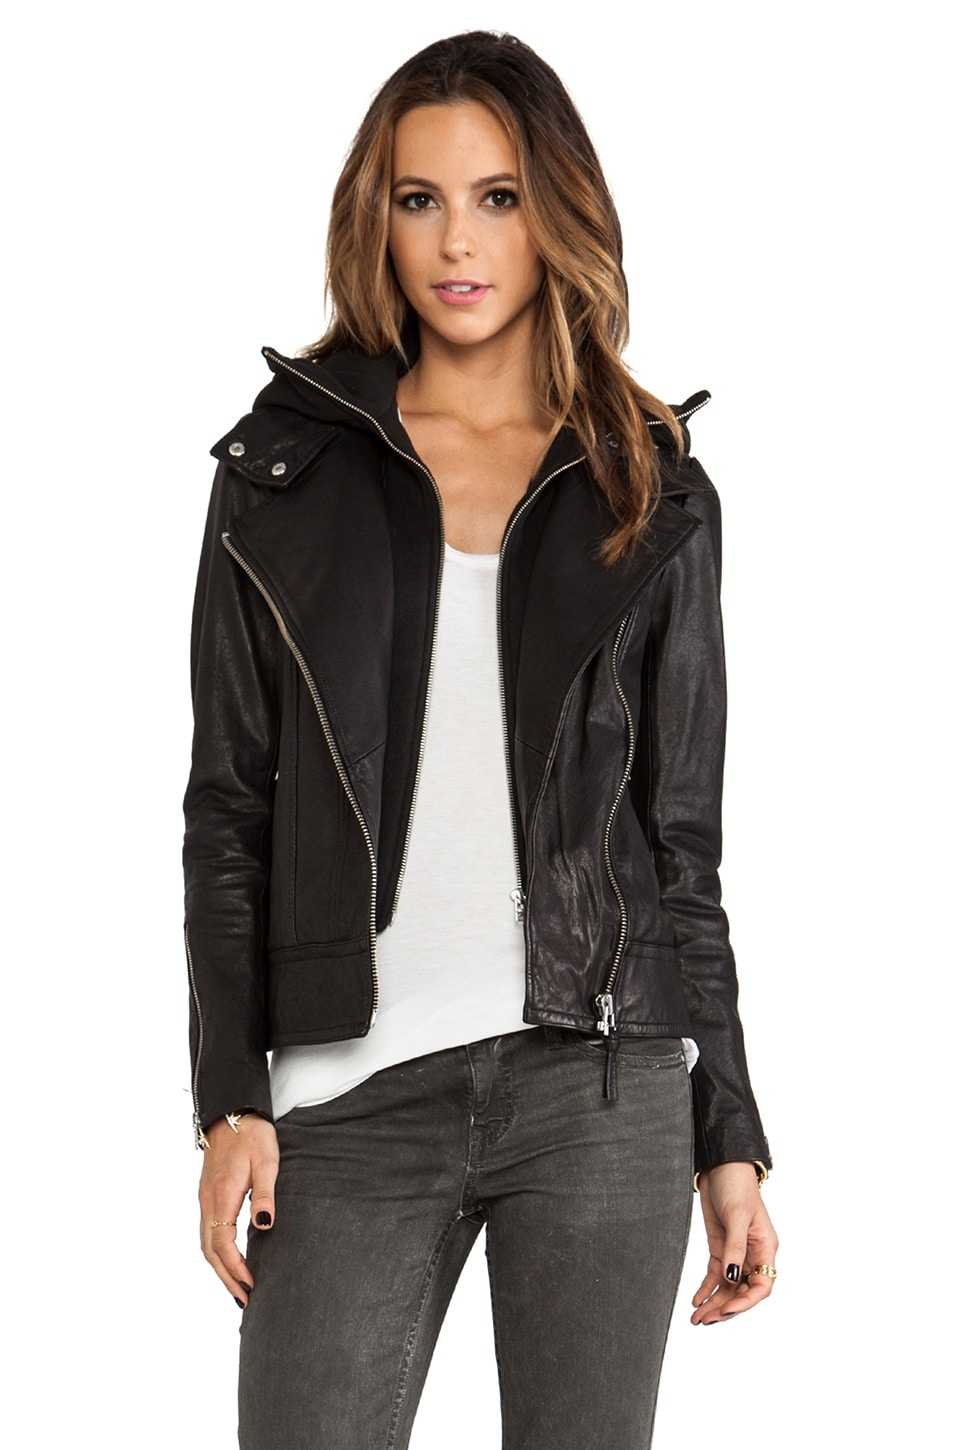 Mackage Kiera Removable Hood Jacket in Black